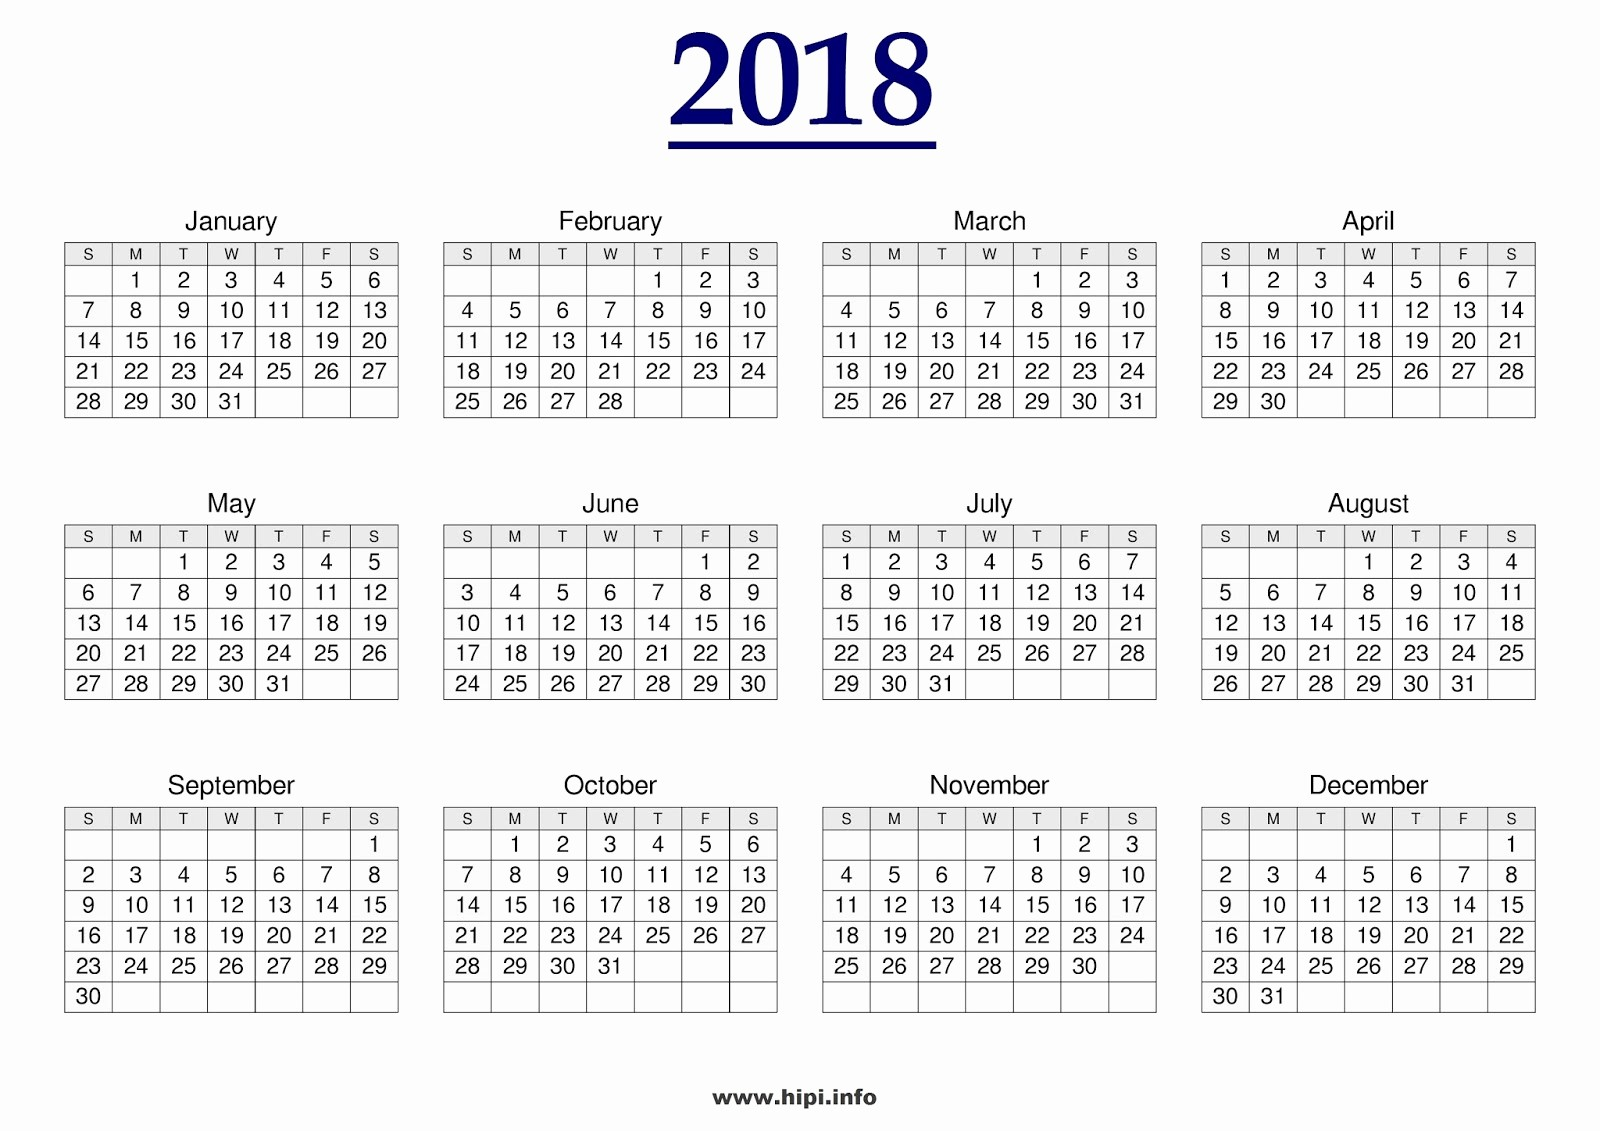 2018 Month by Month Calendar Beautiful Monthly & Yearly 2018 Calendar Printable